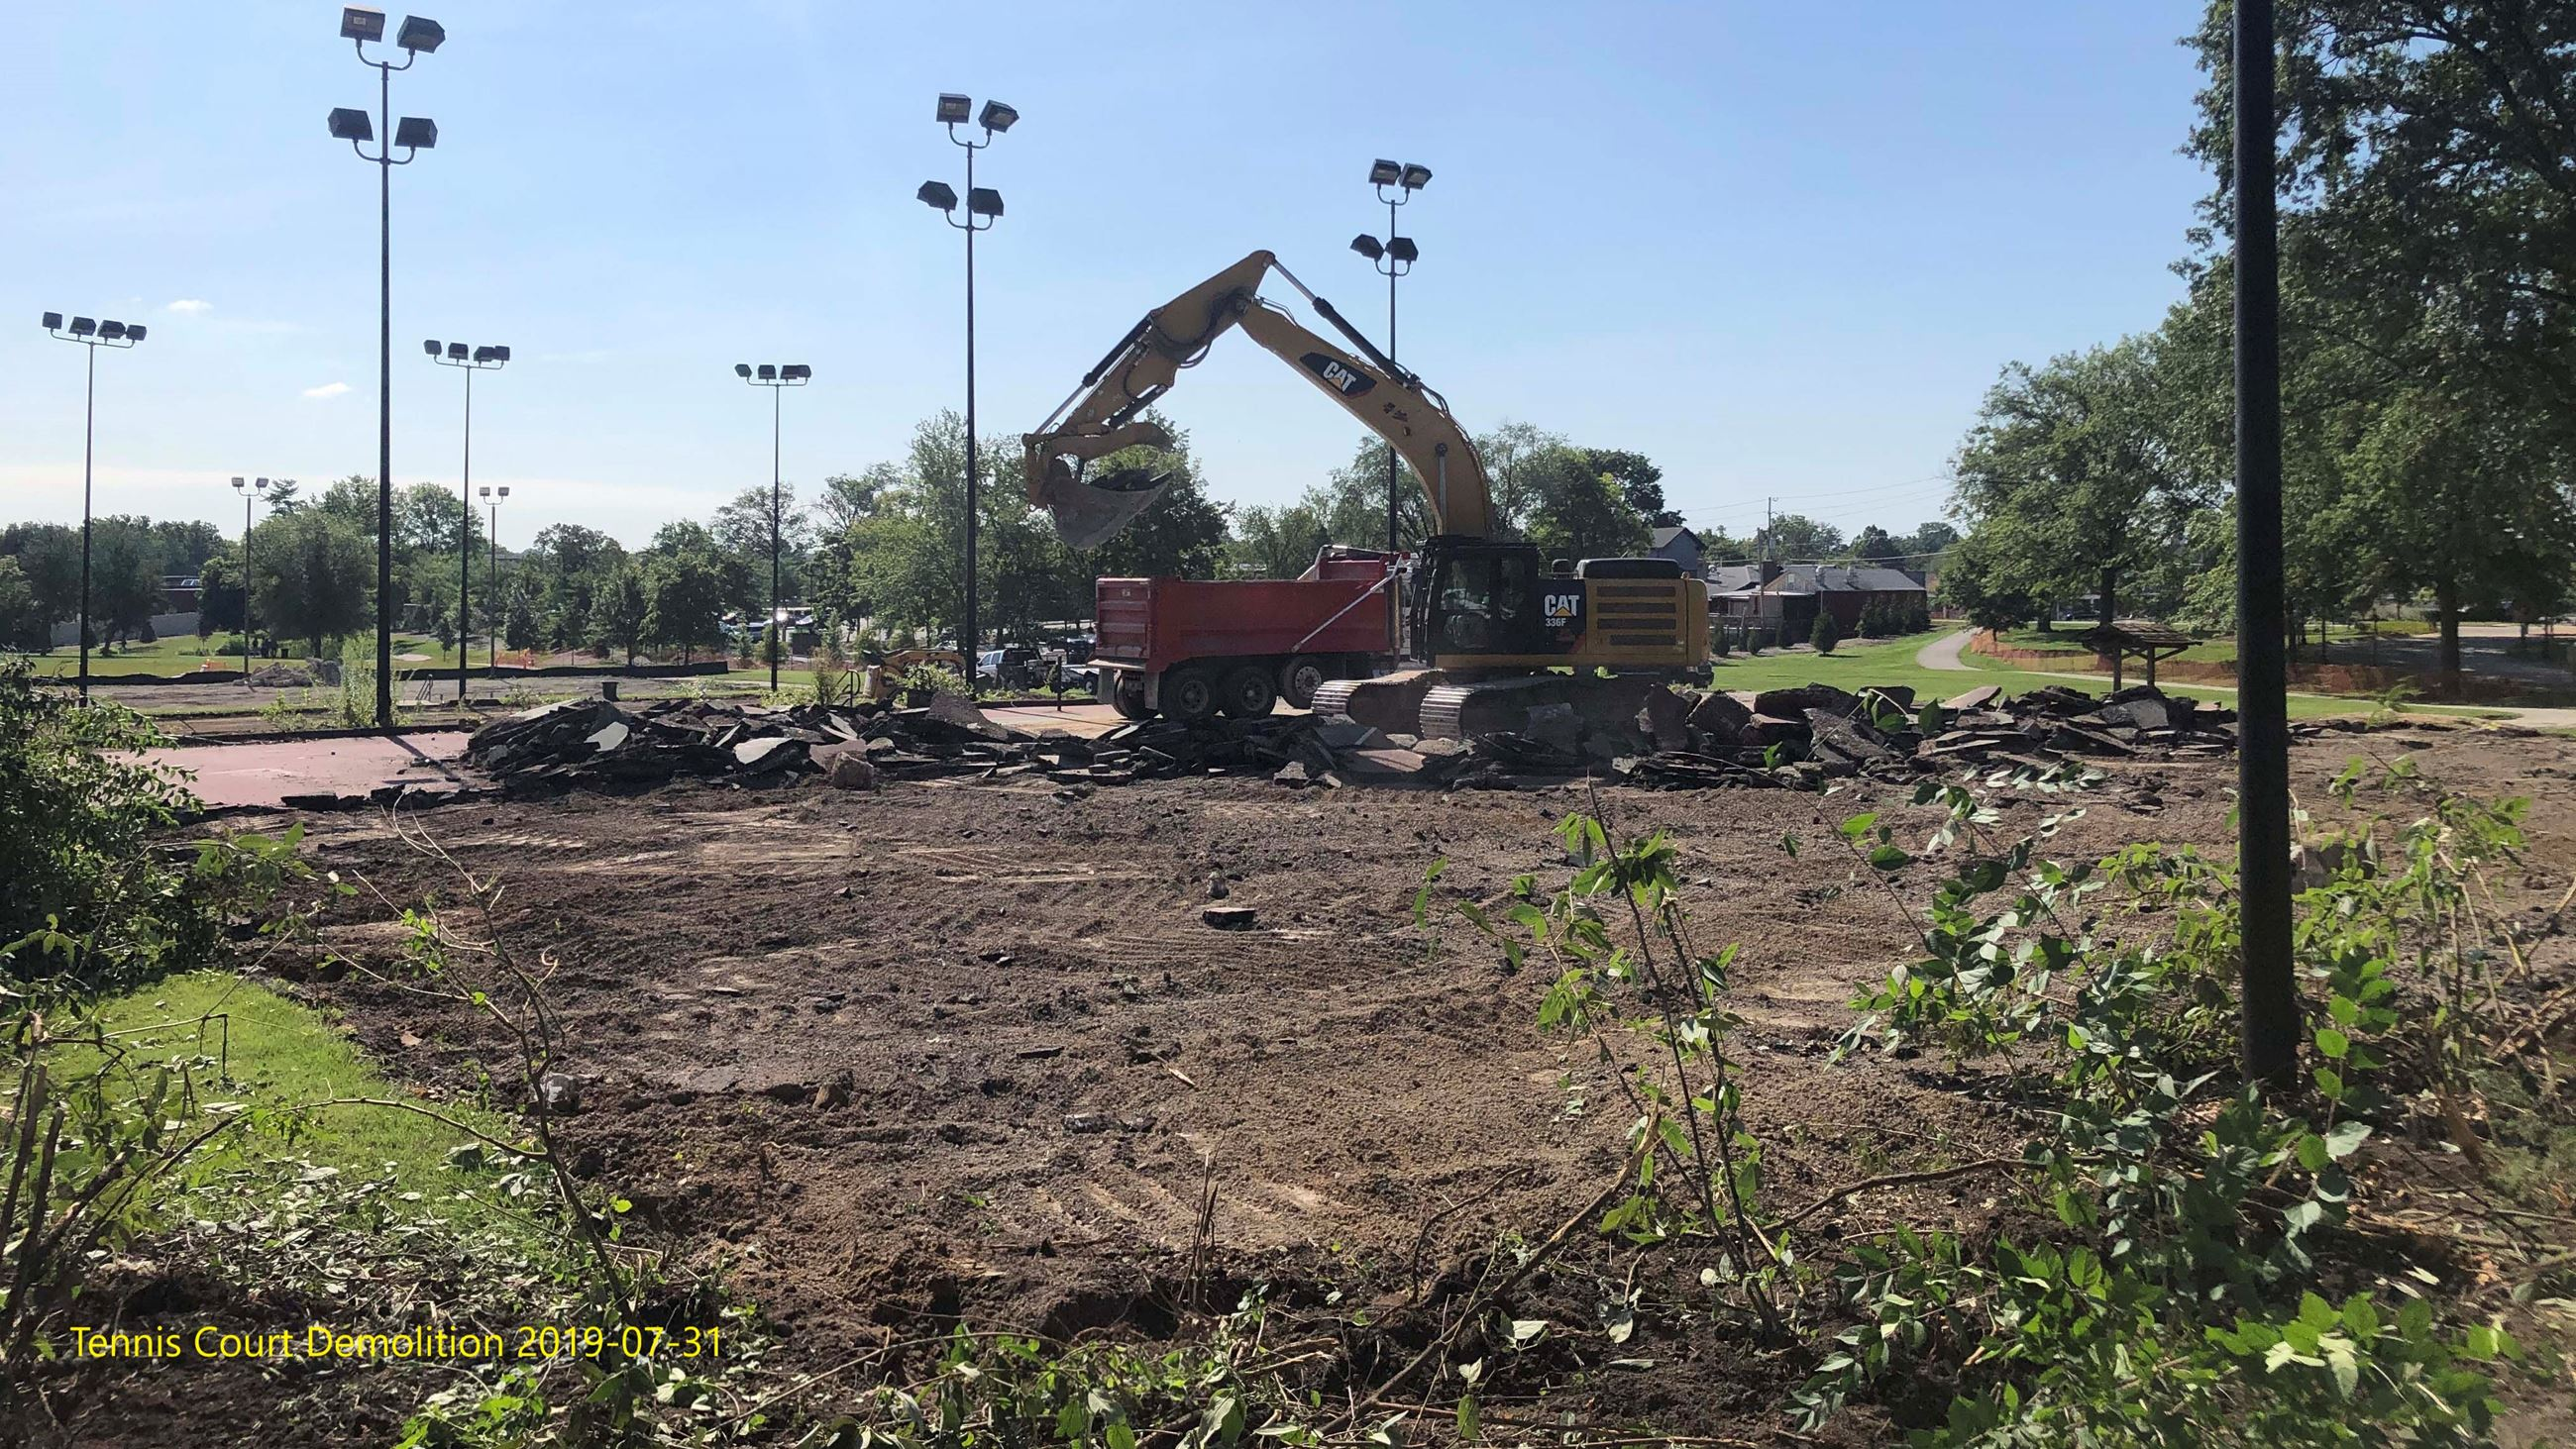 2019-07-31 Court Demolition